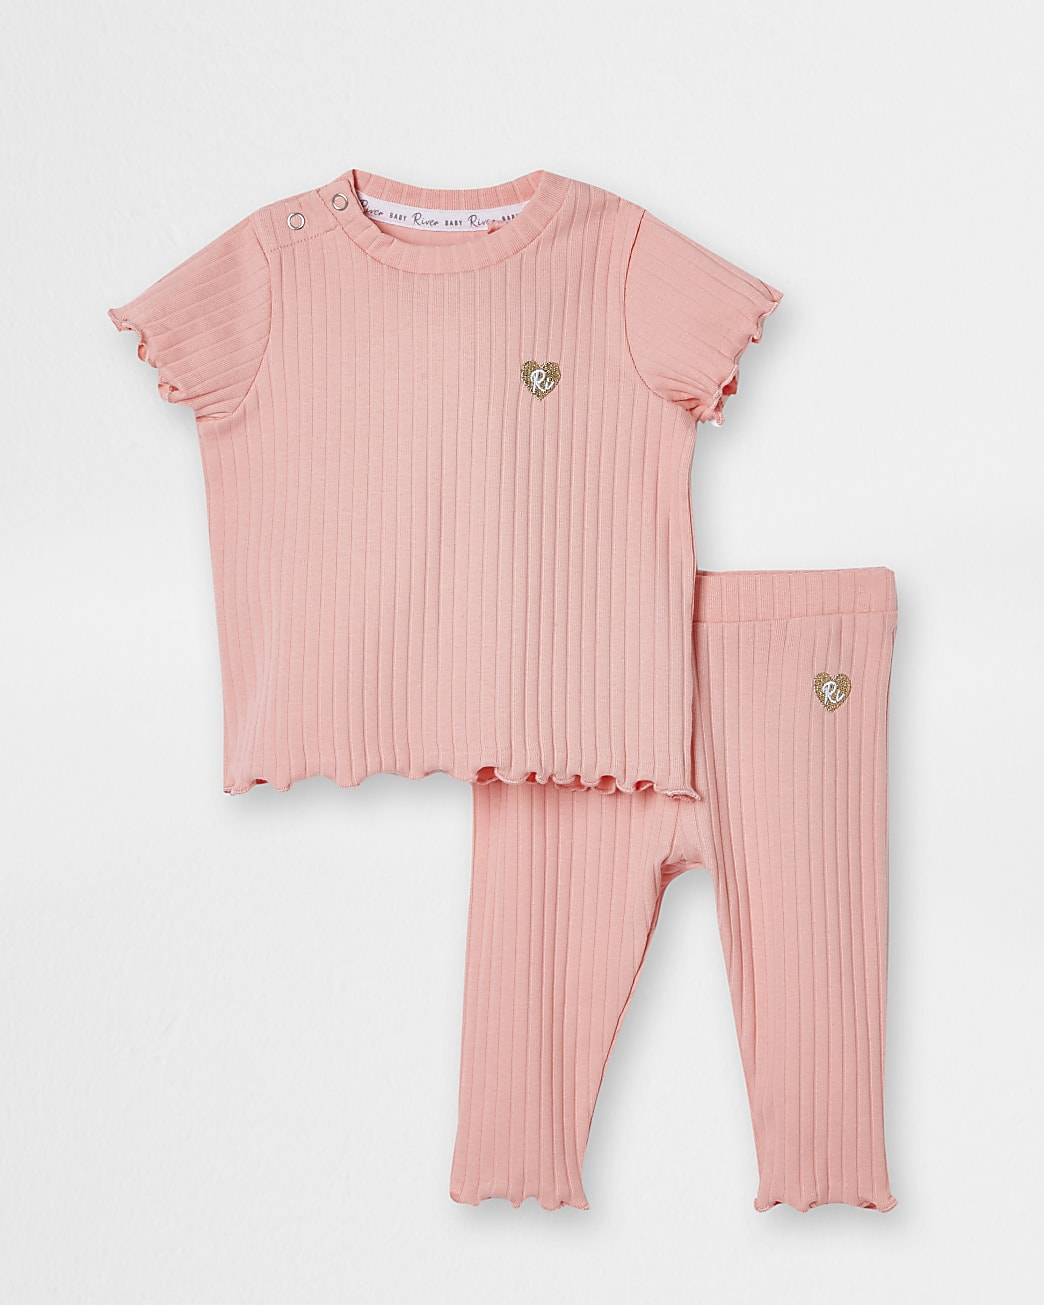 Baby coral ribbed outfit